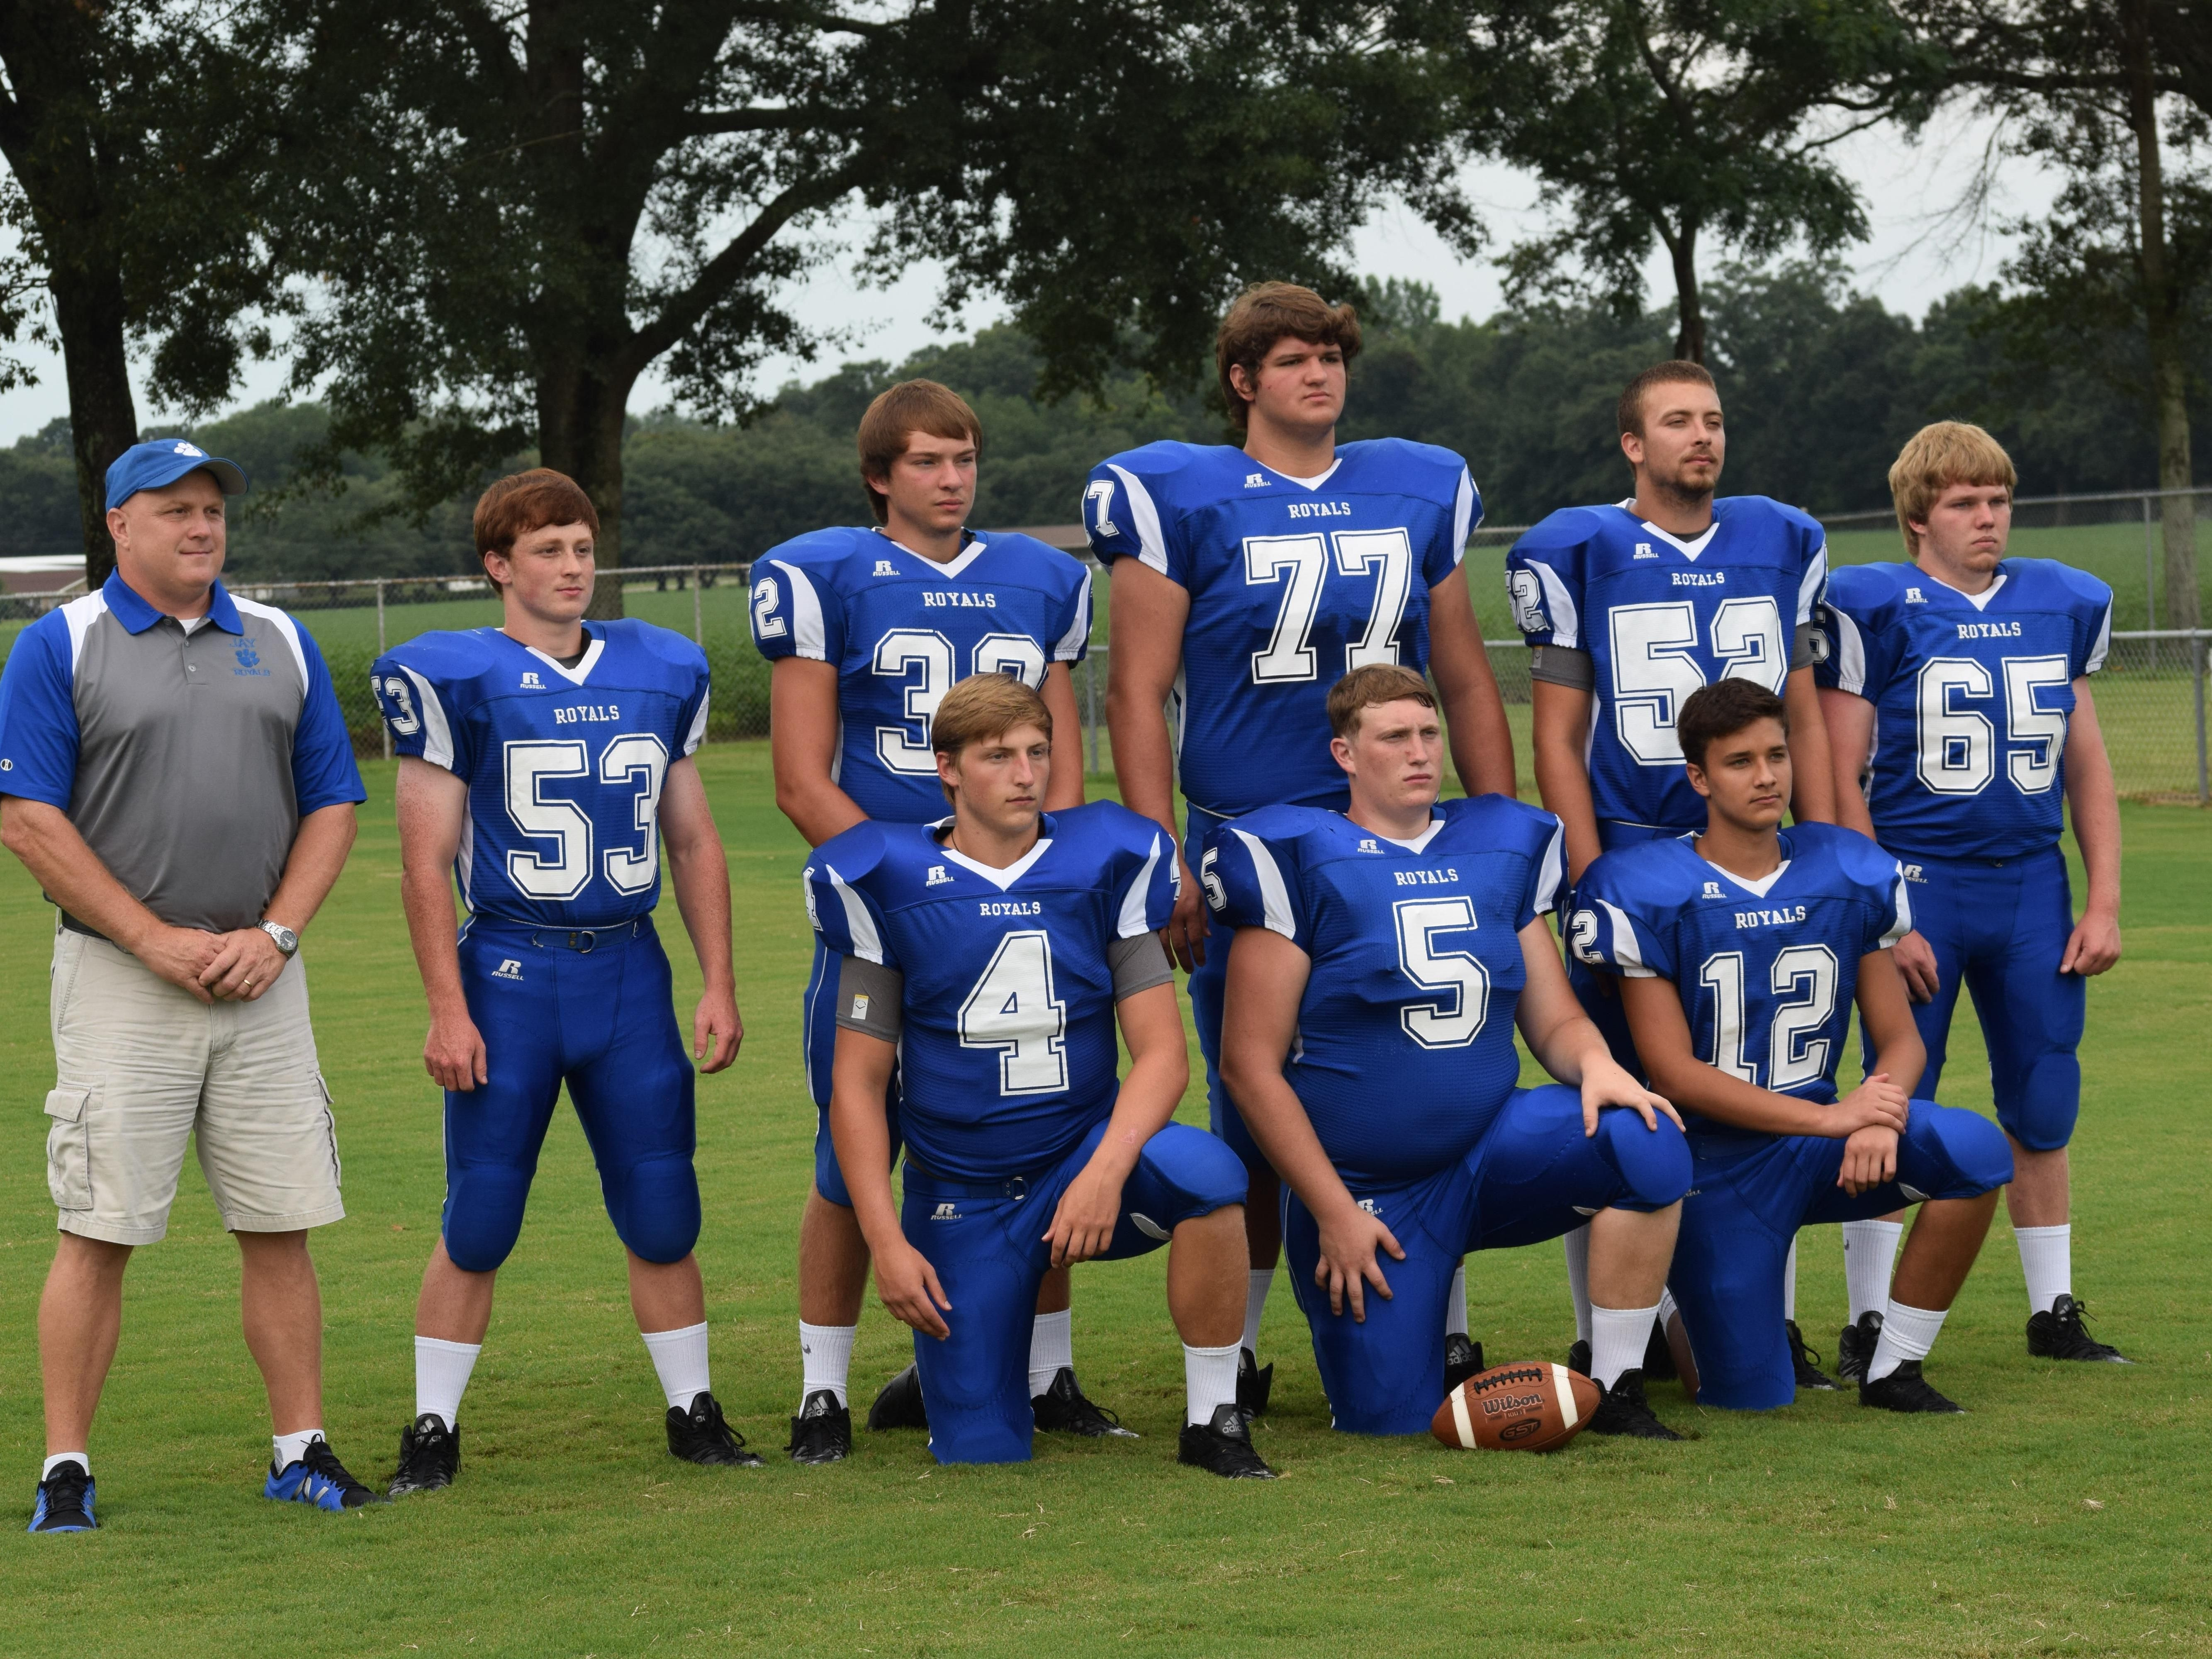 Jay High coach Melvin Kersey stands with his offensive group that includes senior leader Matthew Saylor (4) and mammoth tackle Cade Diamond (77) during team's picture day.